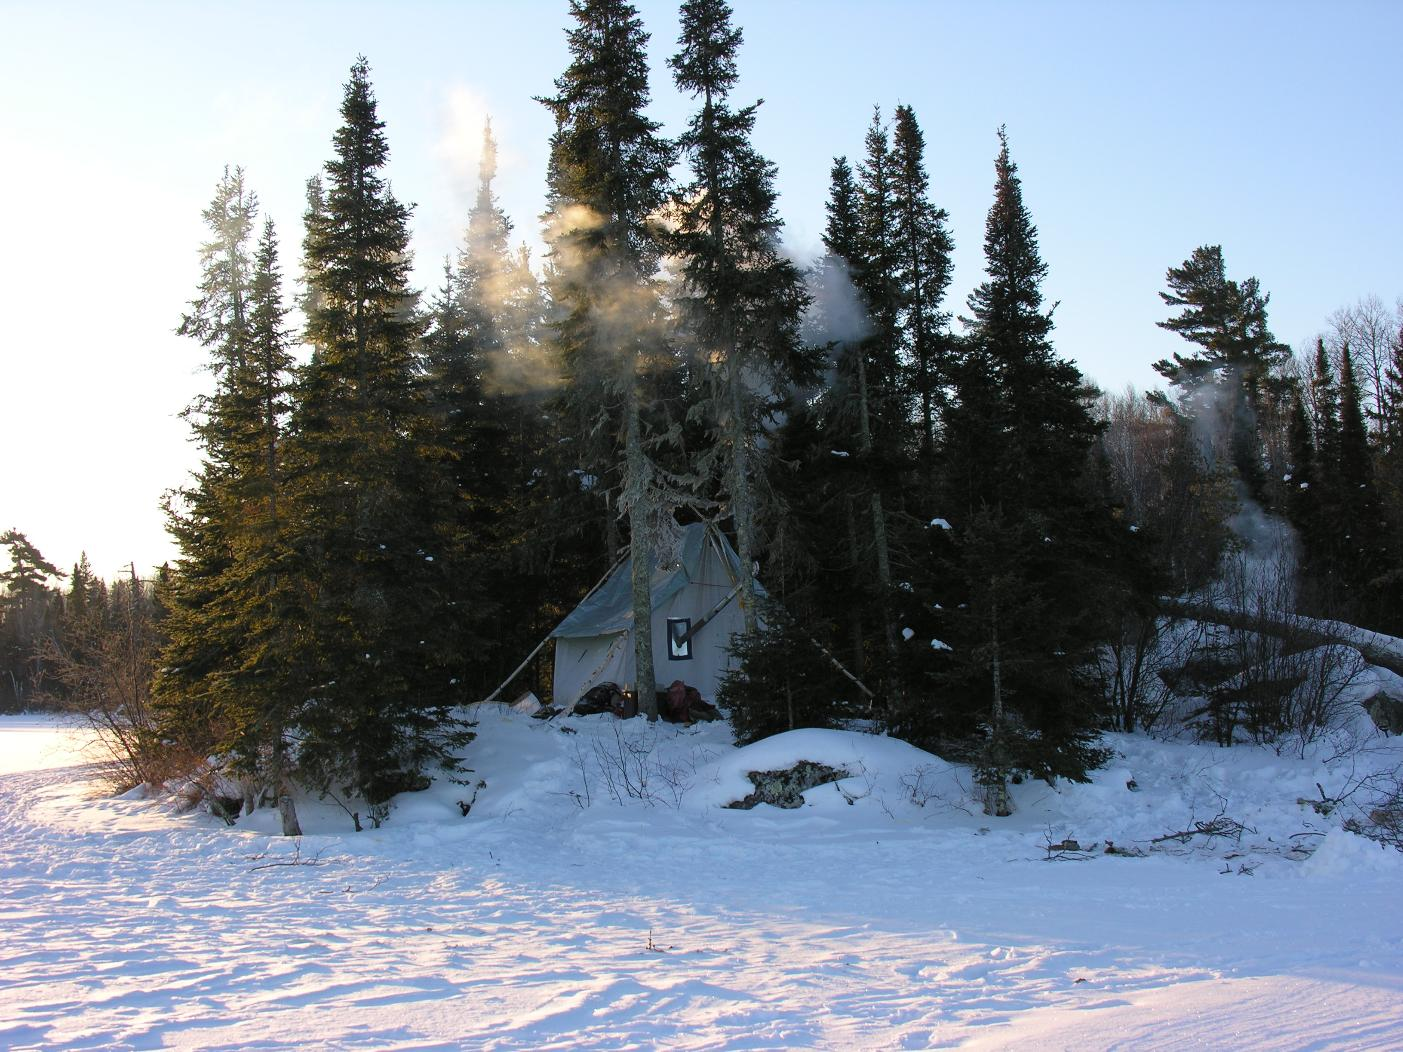 Bwca Stove In Tent Boundary Waters Winter Camping And